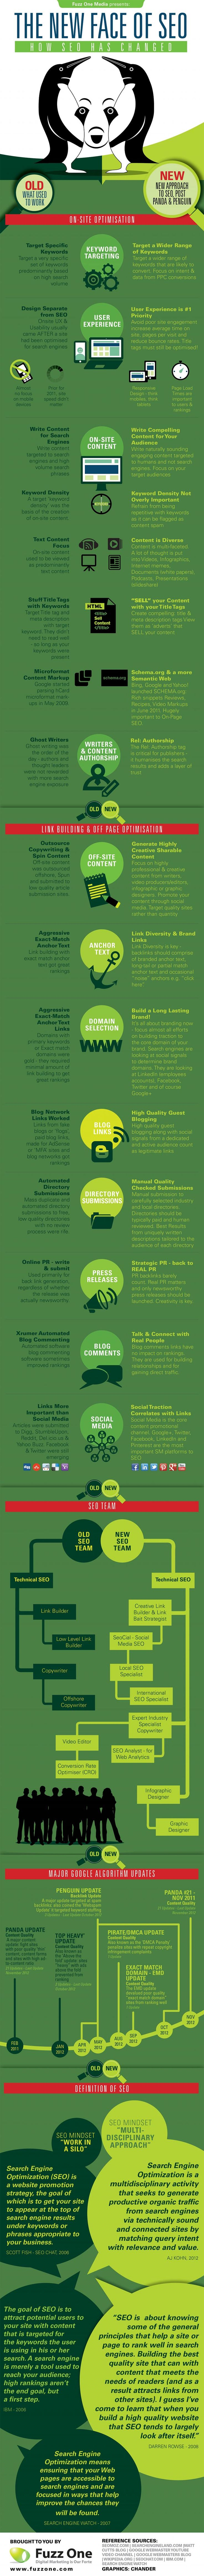 Como cambio el SEO en 1012 - How SEO Has Changed in 2012 #infographic